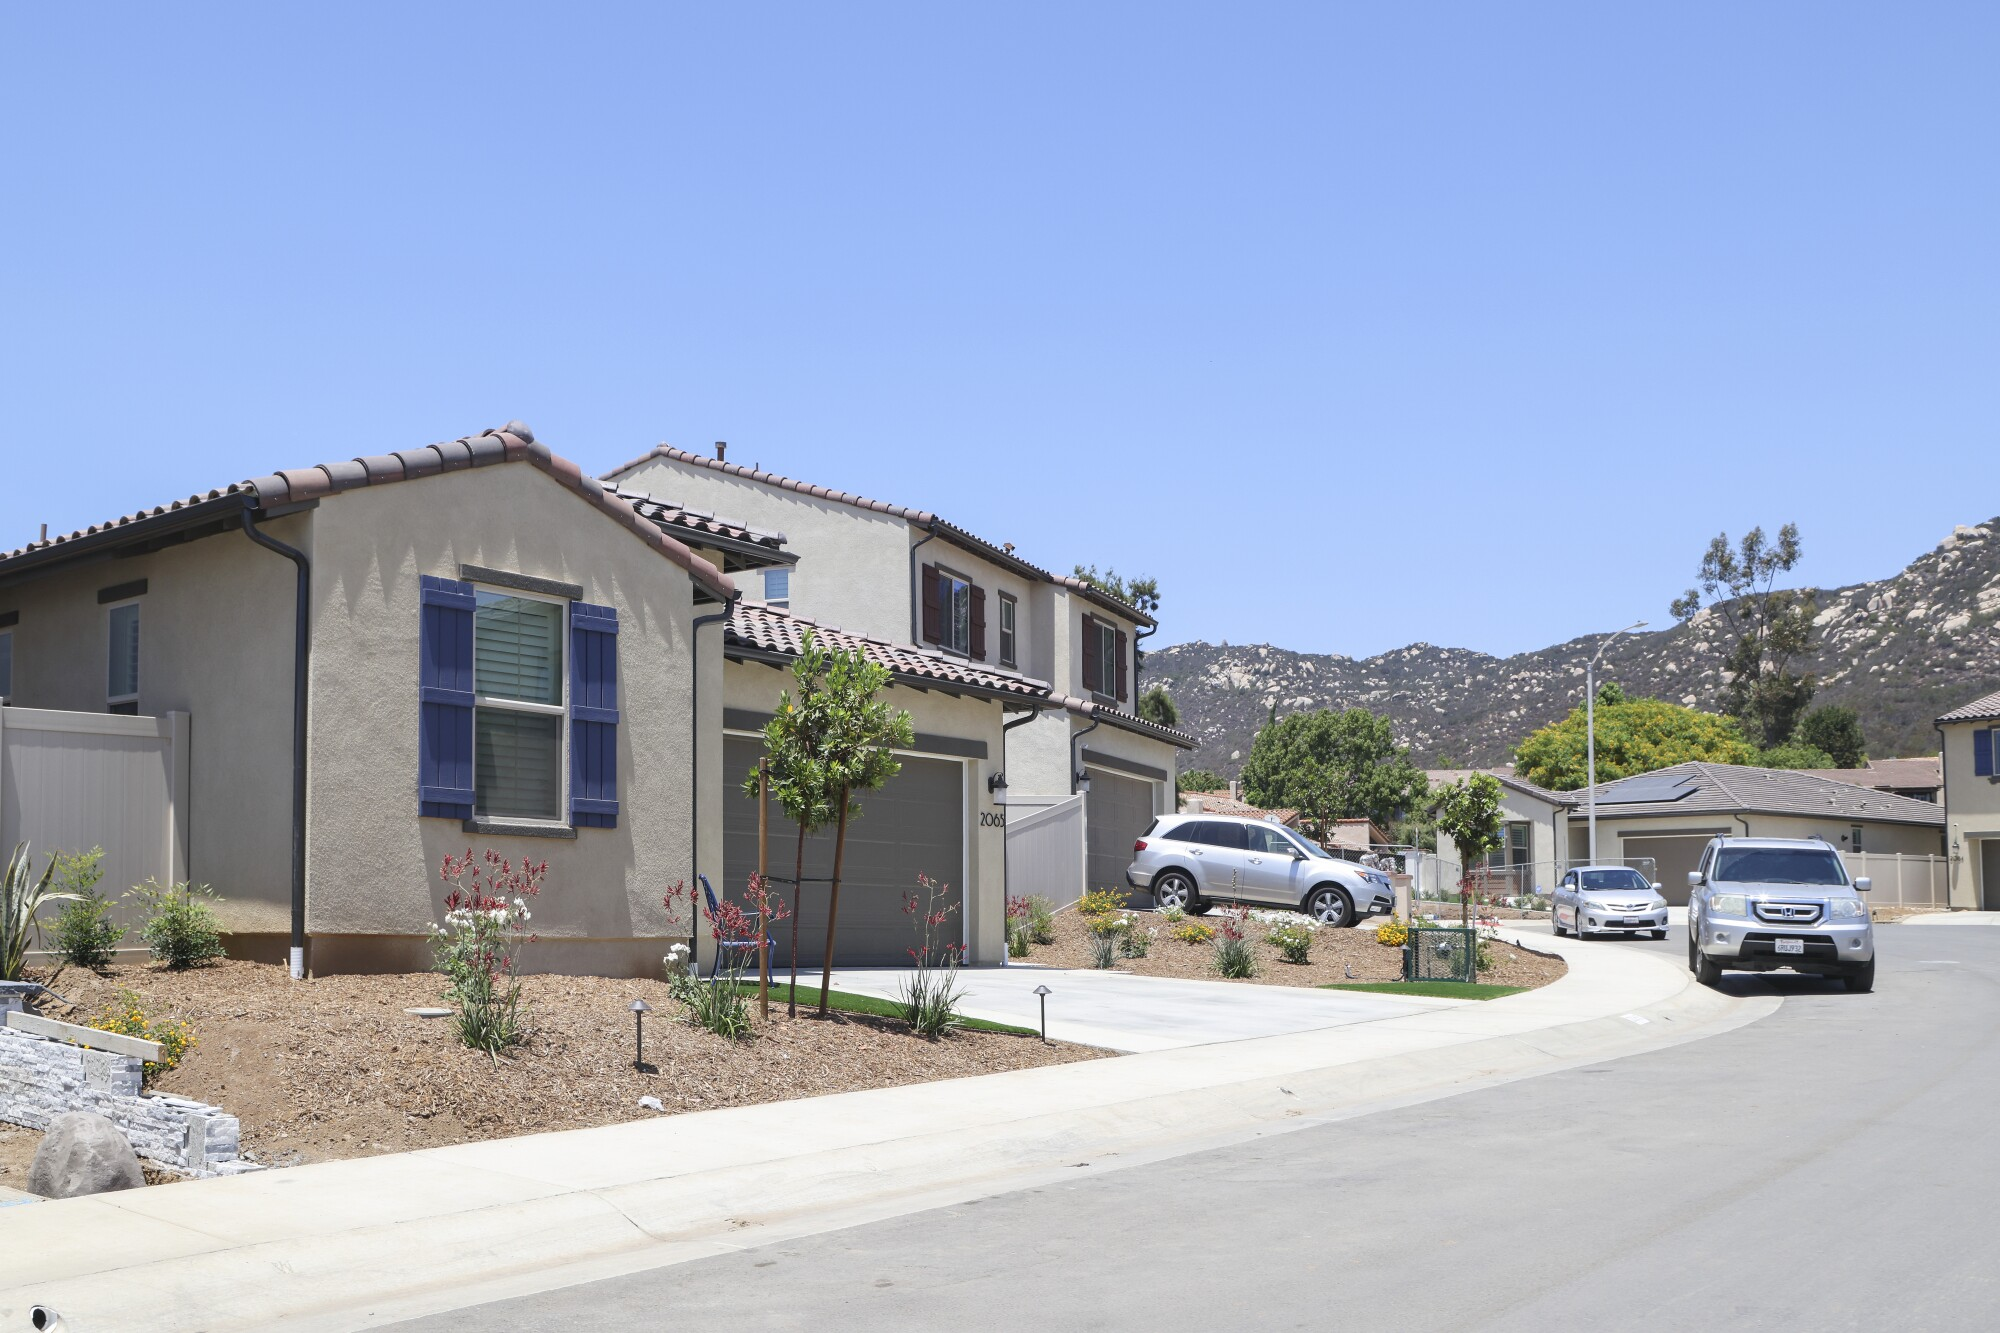 These are some of the 380 homes at the Canopy Grove housing development on Tuesday, July 20, 2021 in Escondido, CA.